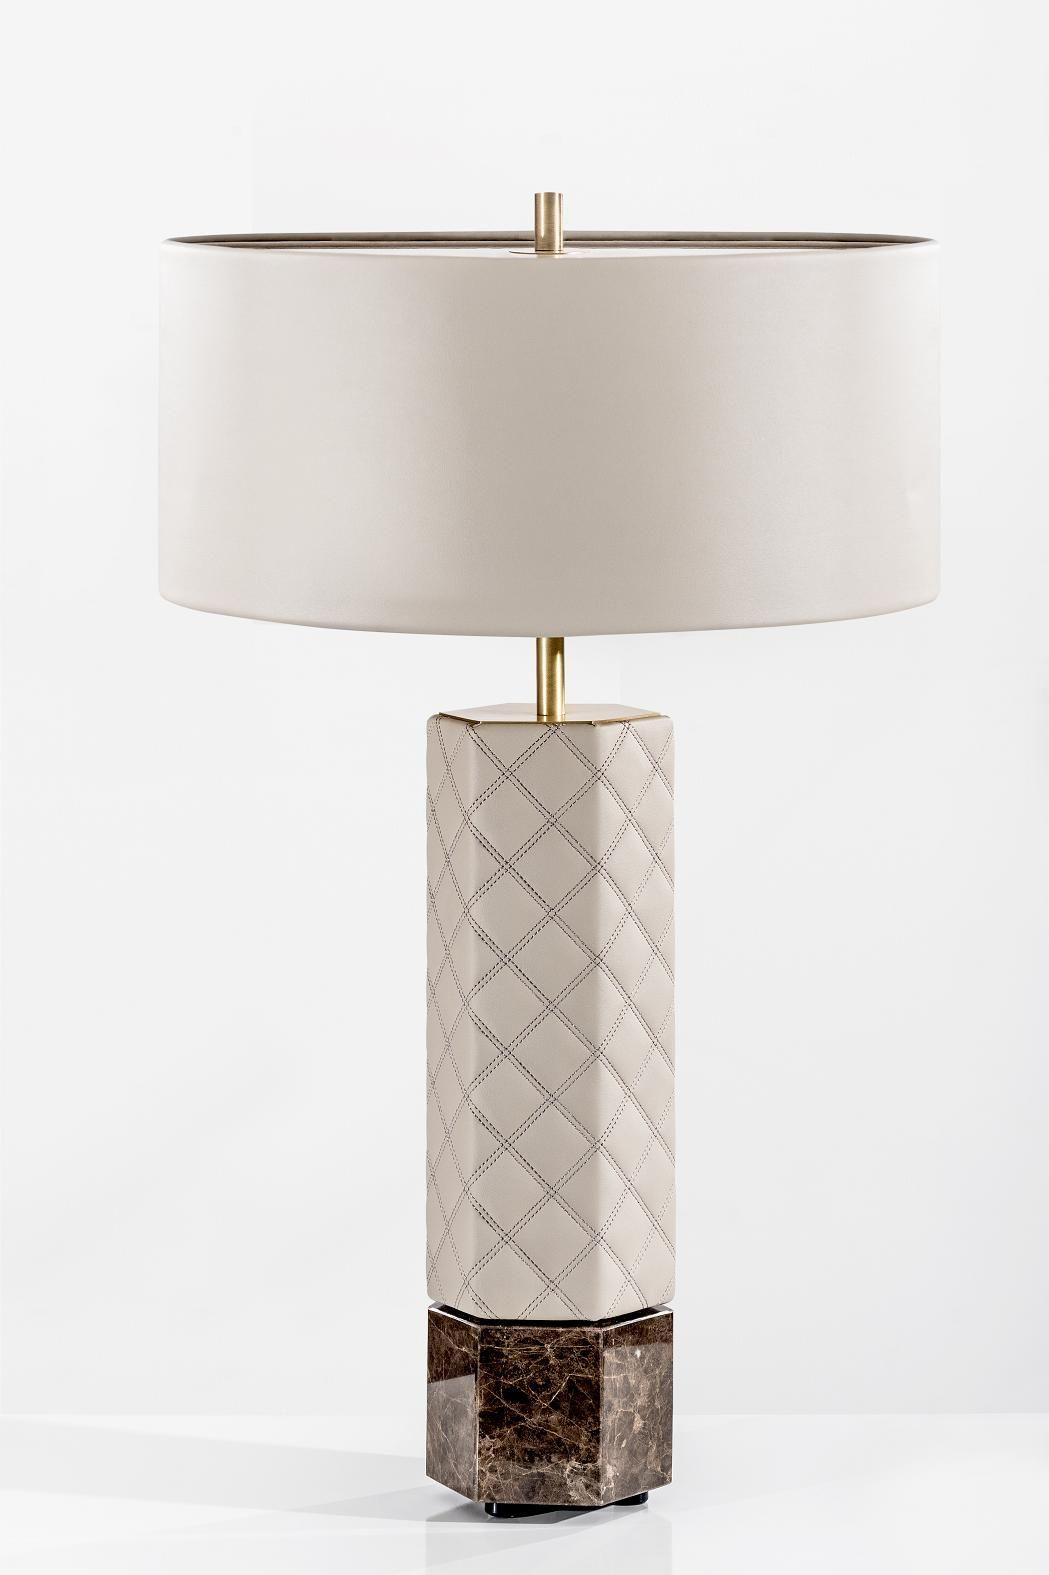 Is This Table Lamp The One You Have Been Looking For Check Out Ideas Here Www Lightingstores Eu Visit Our Blog F Lamp Inspiration Table Lamp Modern Lamp